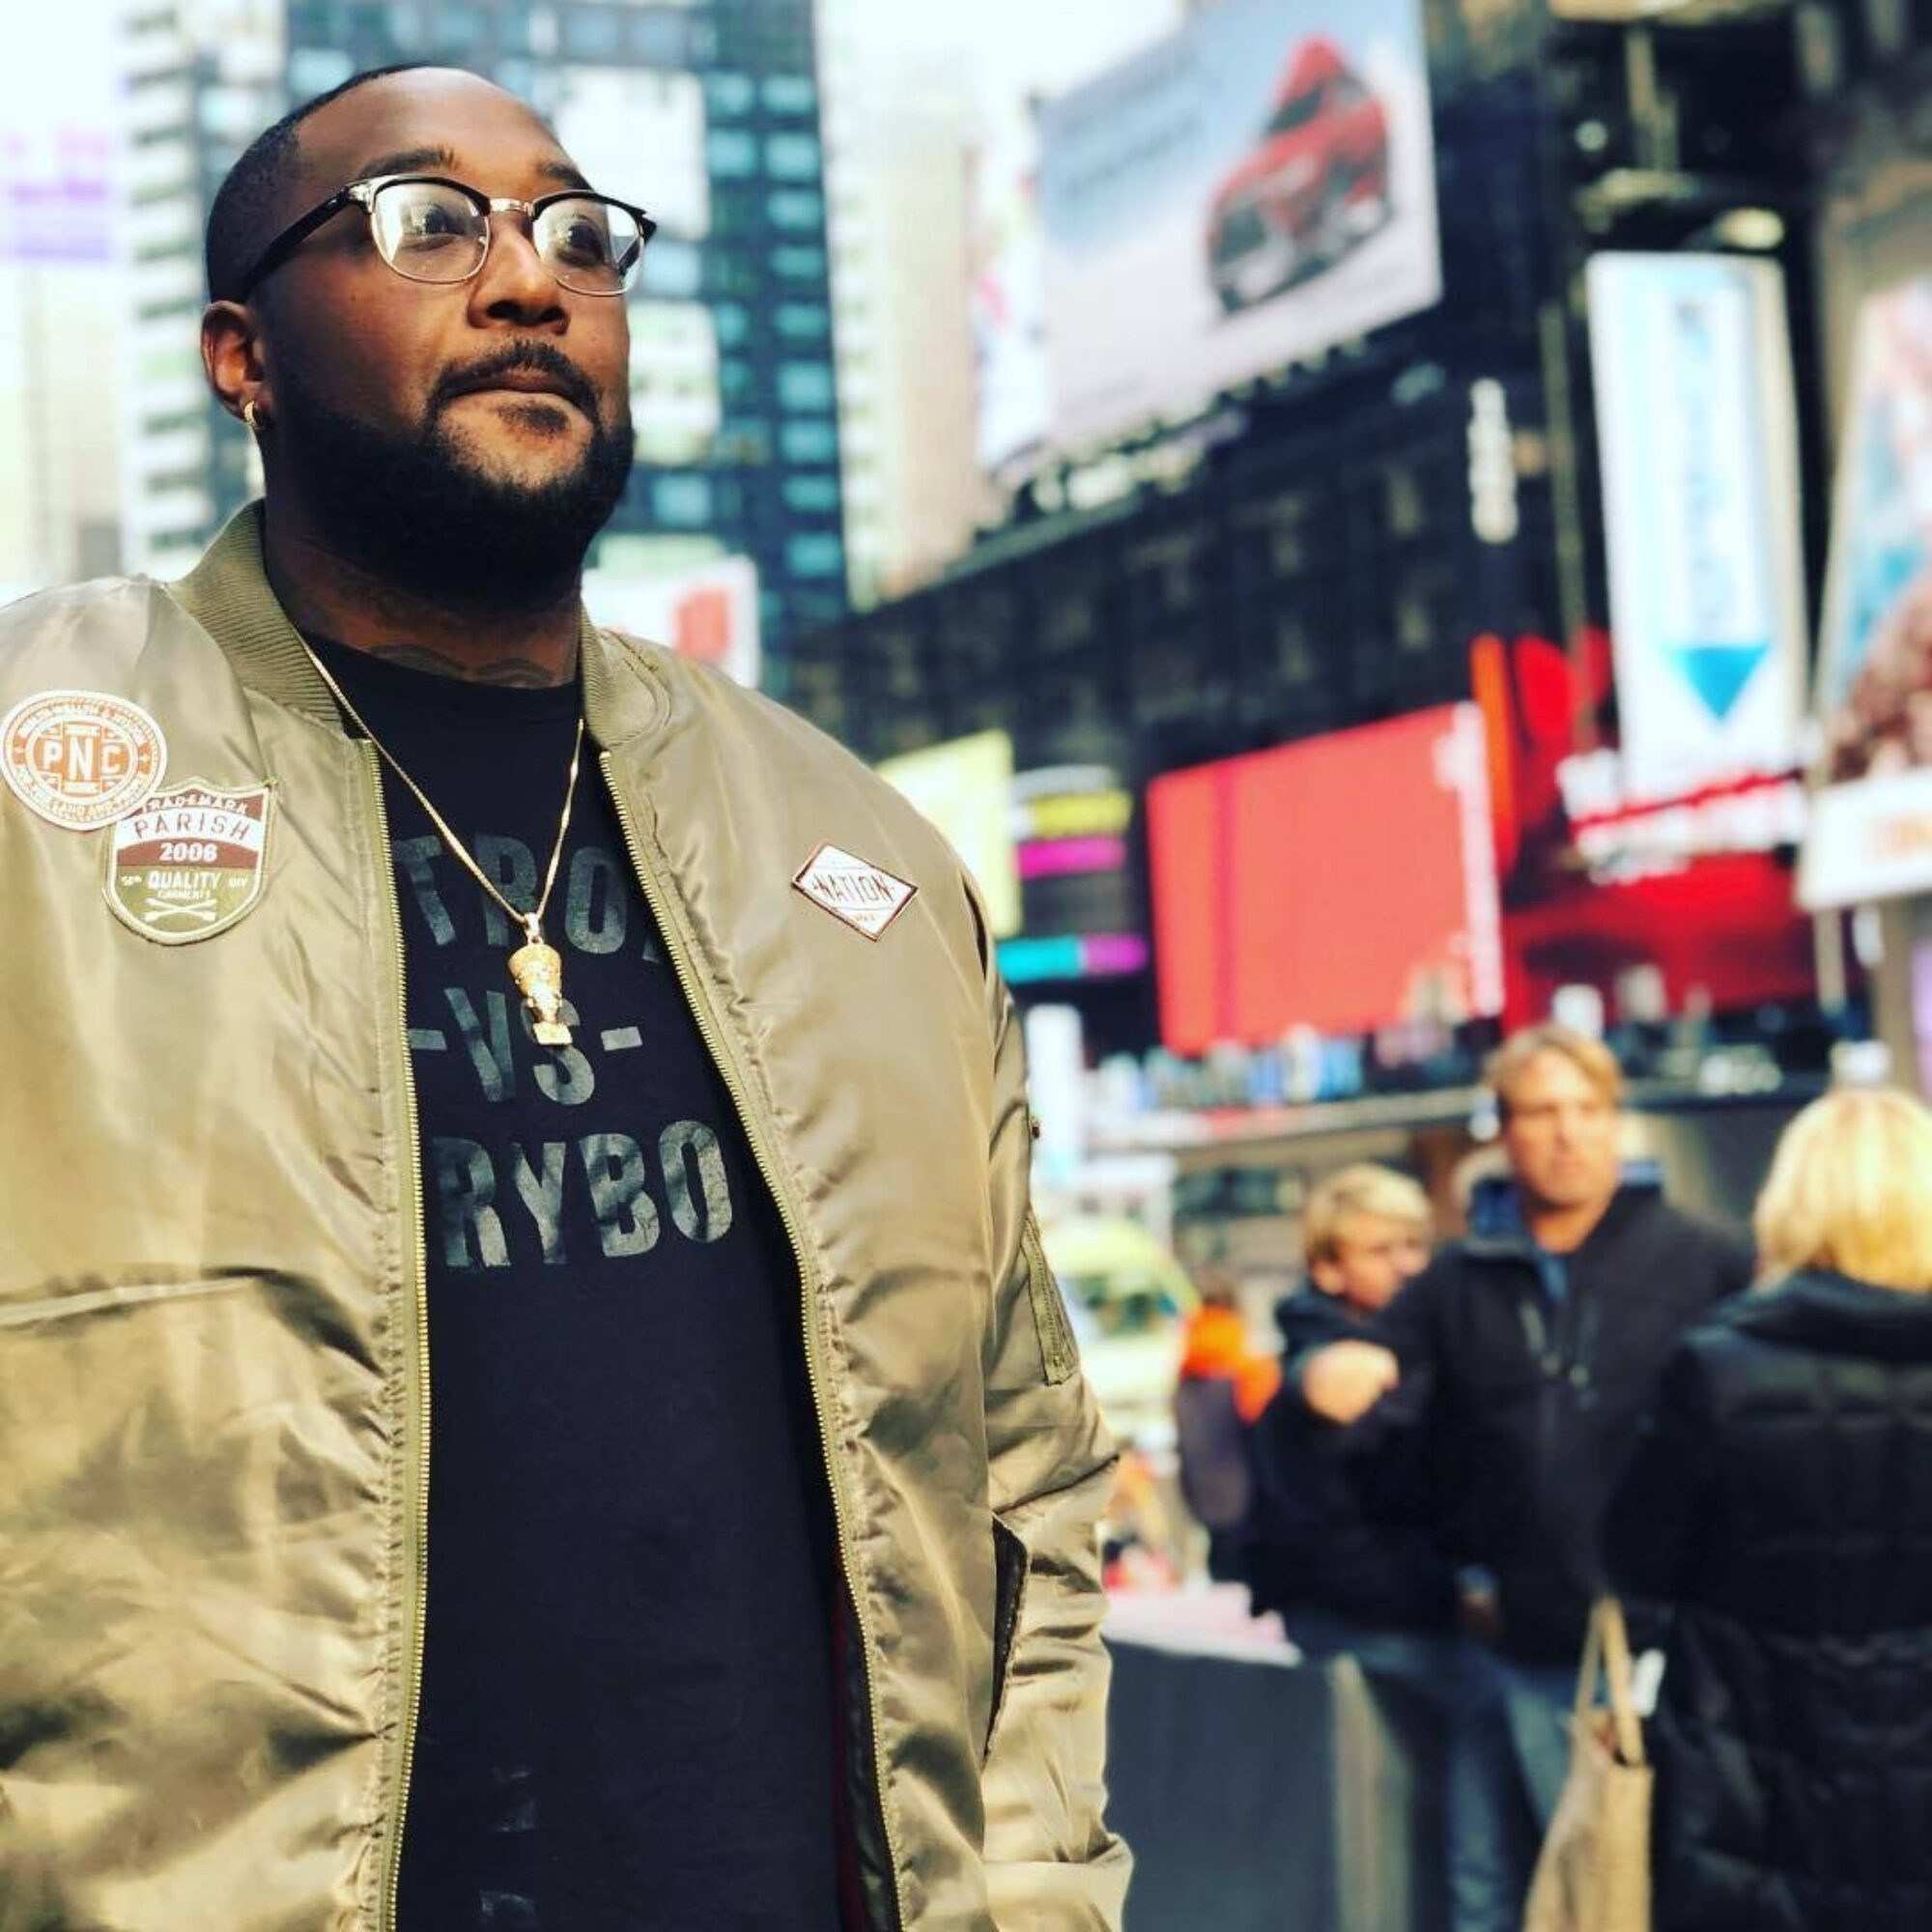 Thomas Fields Jr. standing in Times Square.